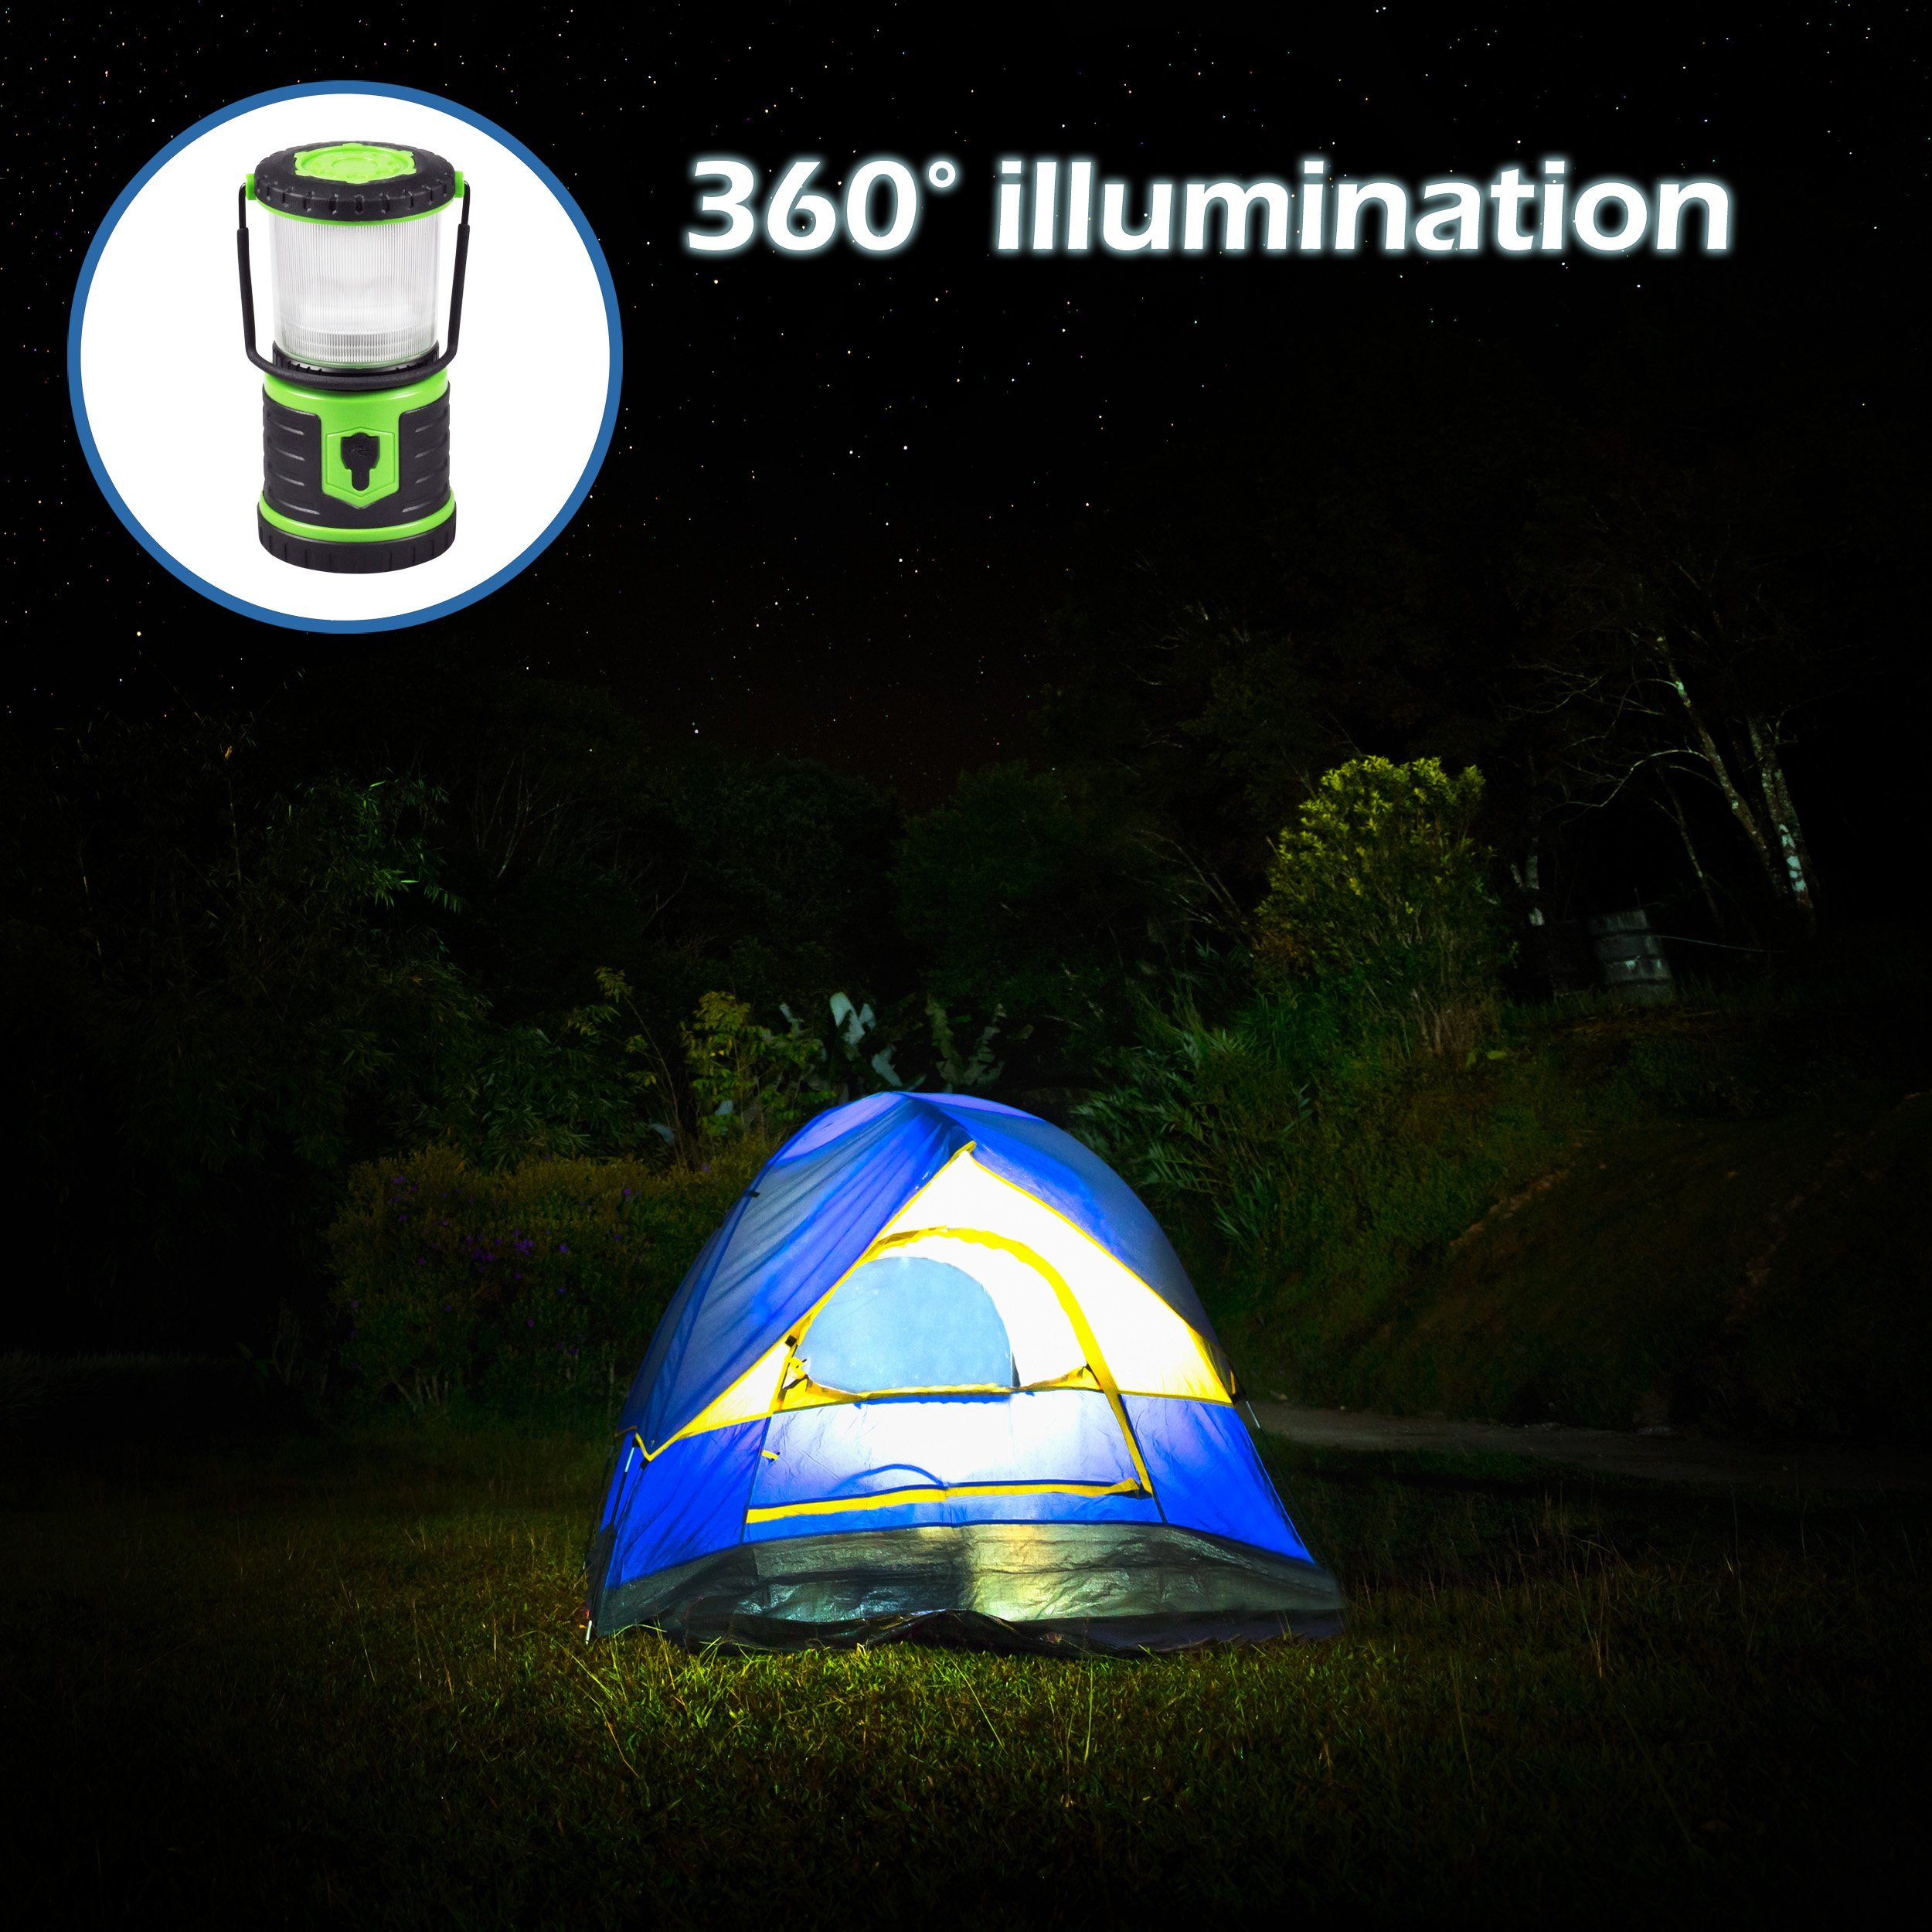 Blazin' Bison Brightest Rechargeable LED Lantern | 400 Hour Runtime | Phone Charger | Hurricane, Emergency, Storm (400 Lumen, Green) by Blazin' Bison (Image #6)